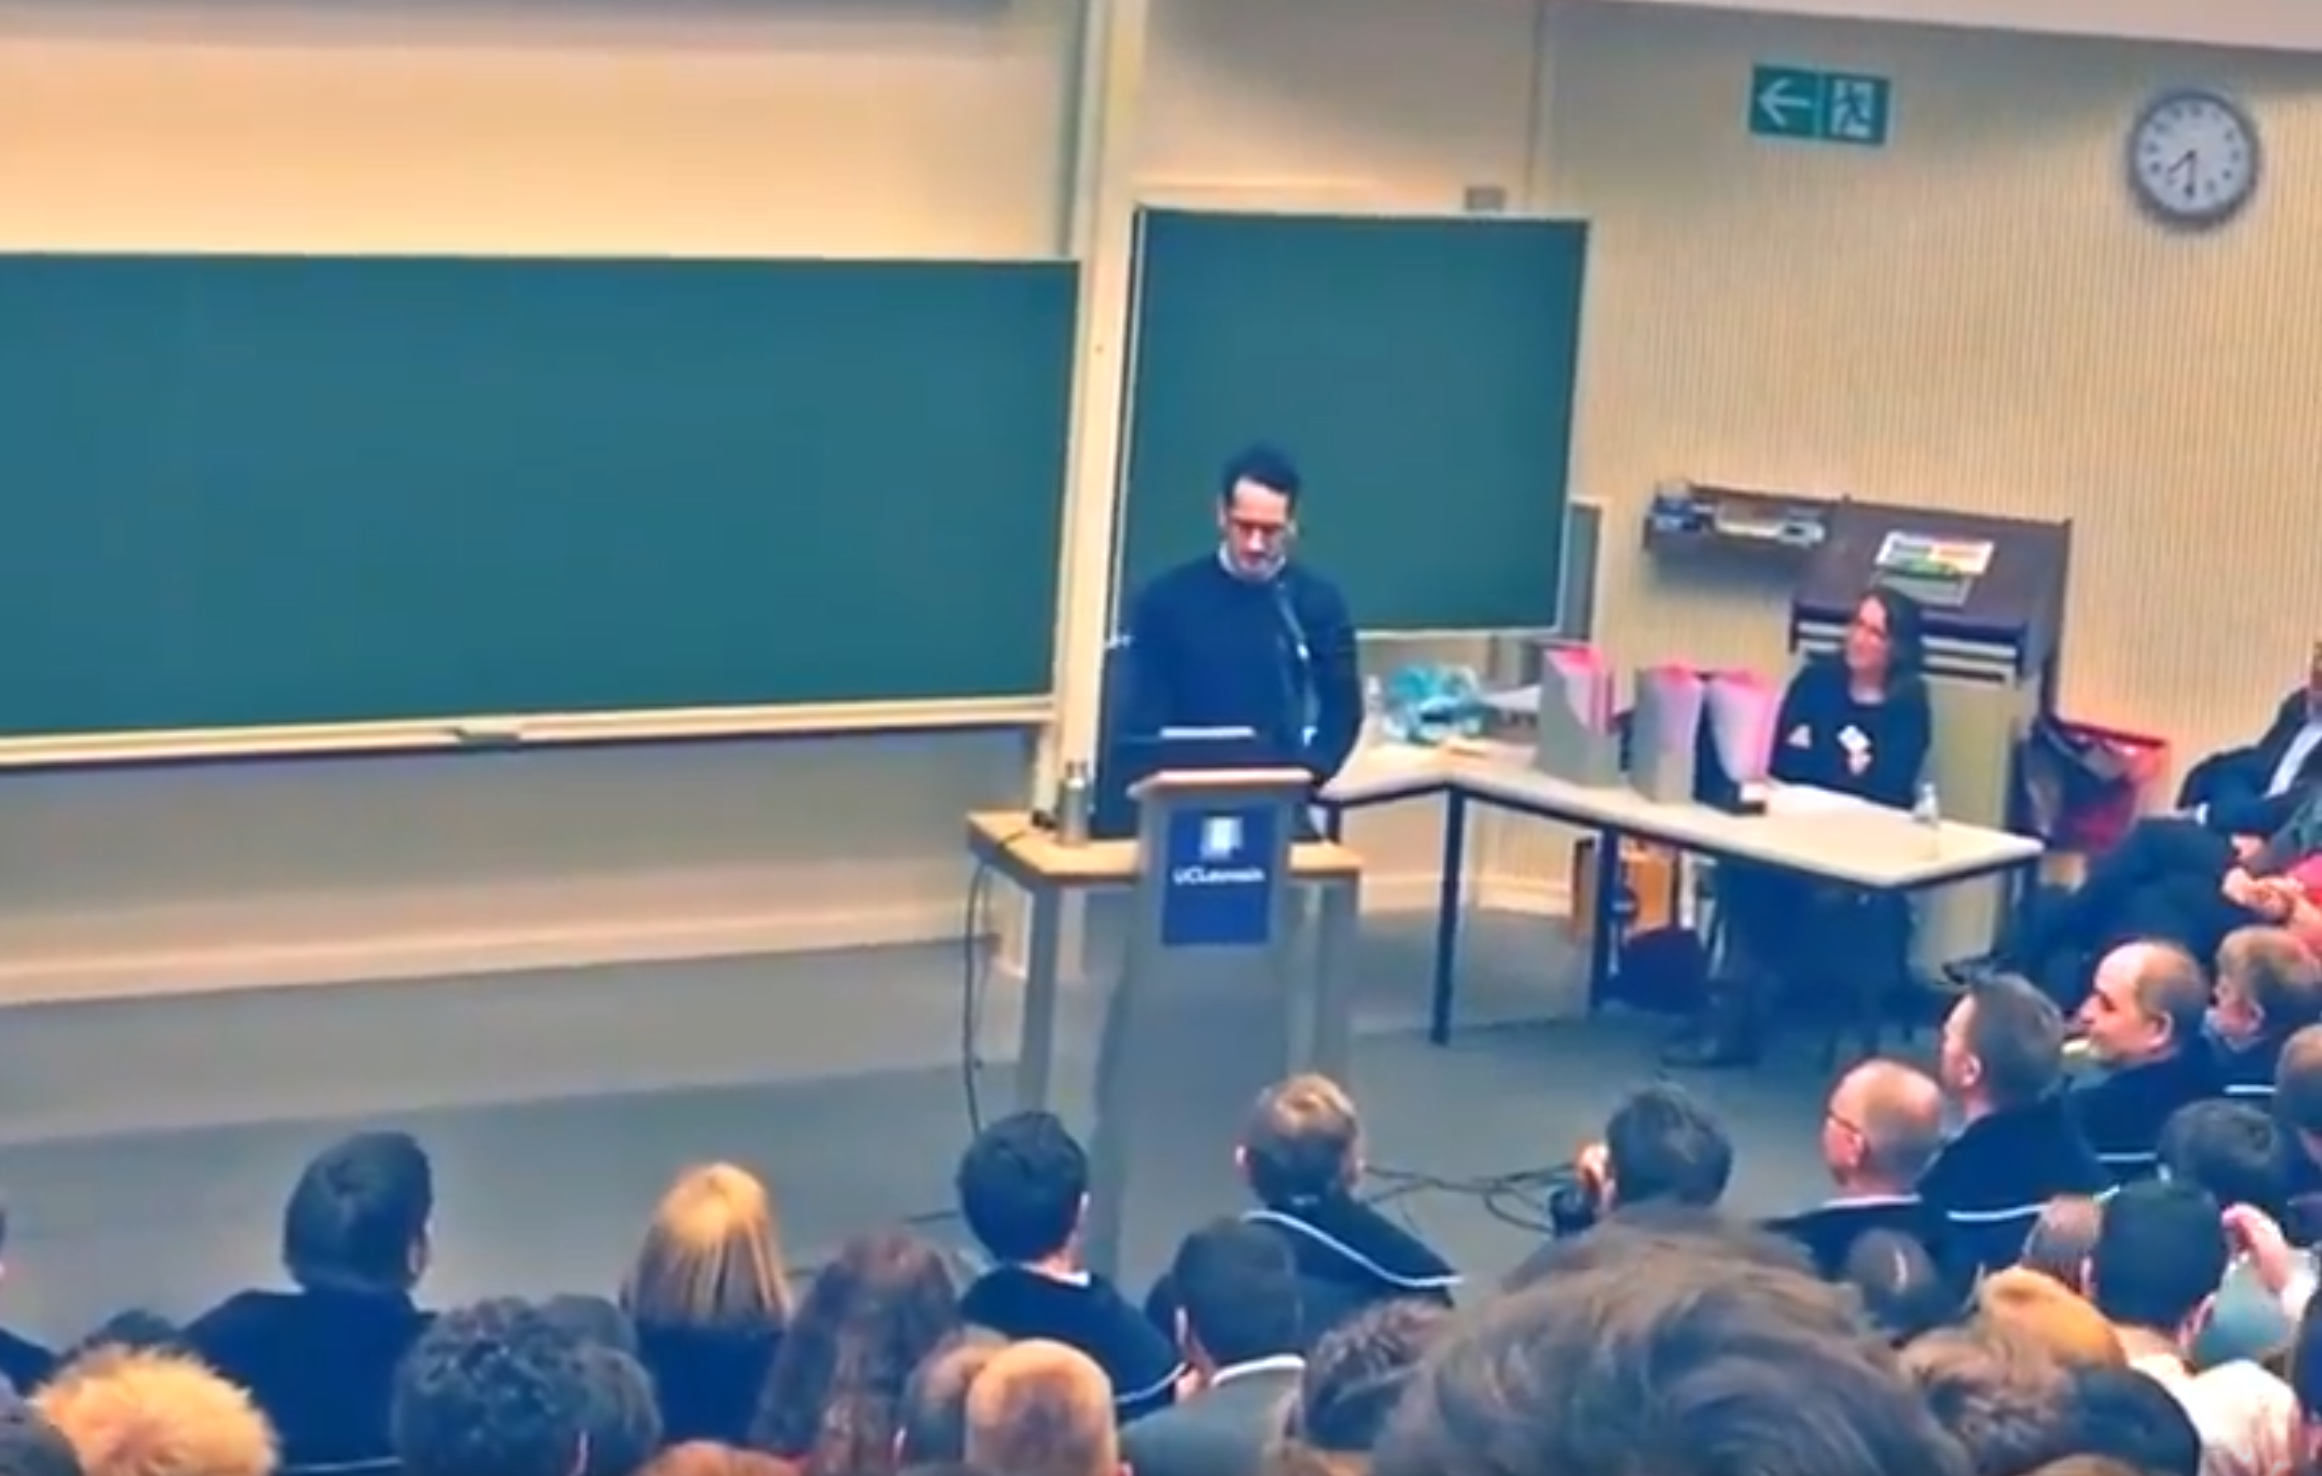 Pedro Correa à l'Université catholique de Louvain.